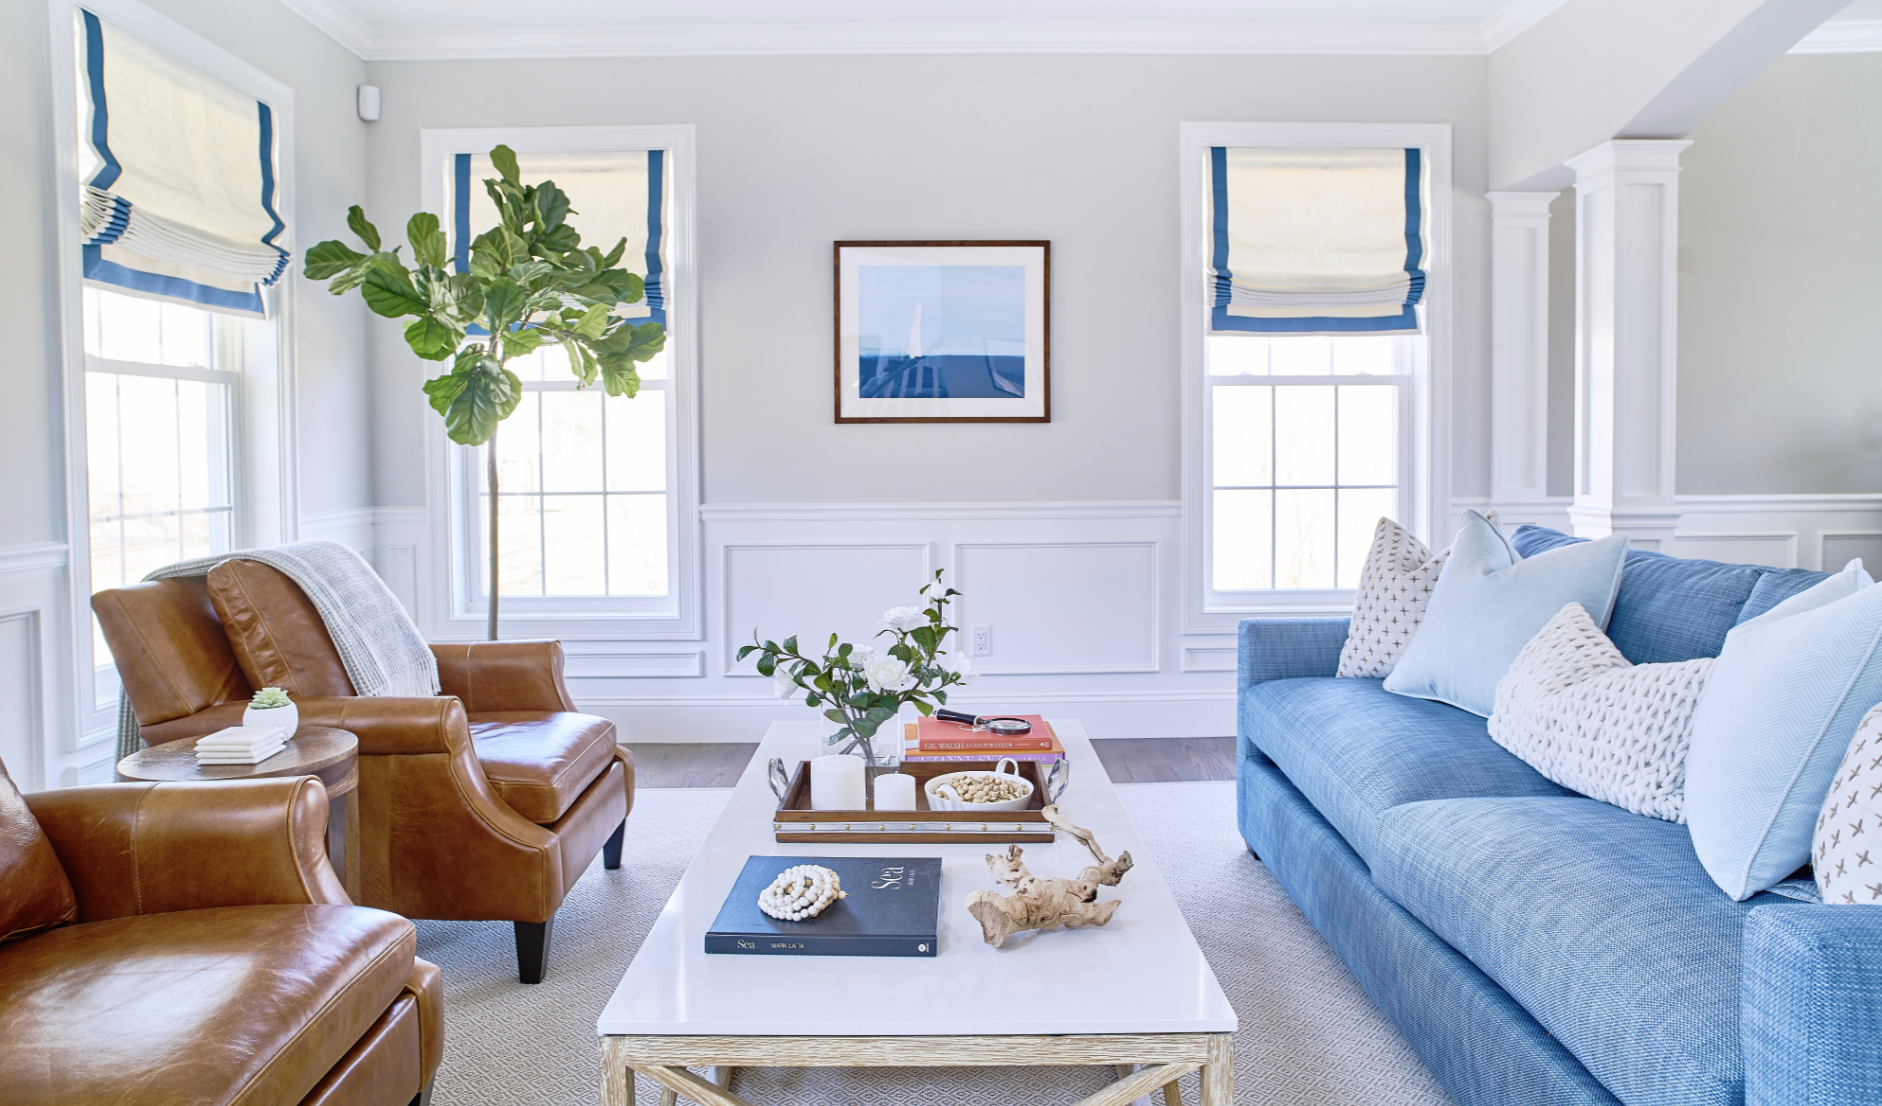 warm cool living room leather chairs blue sofa white walls wainscoting fiddle leaf interior design blakely RI